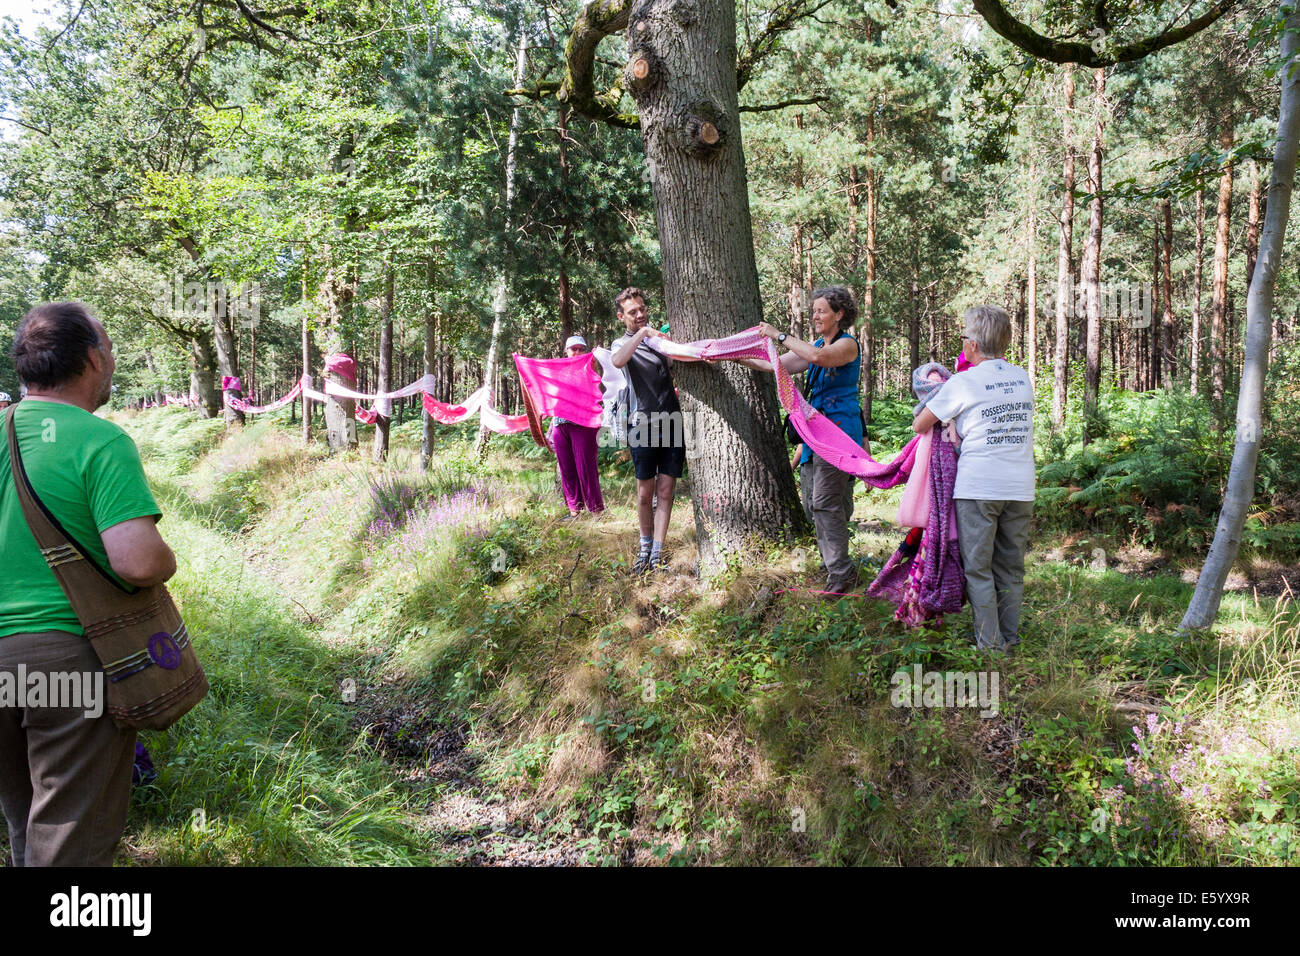 Aldermaston-Burghfield, Berkshire, England, GB, UK.. 9th August 2014. A 7 mile (11km) long hand-knitted 'scarf' Stock Photo